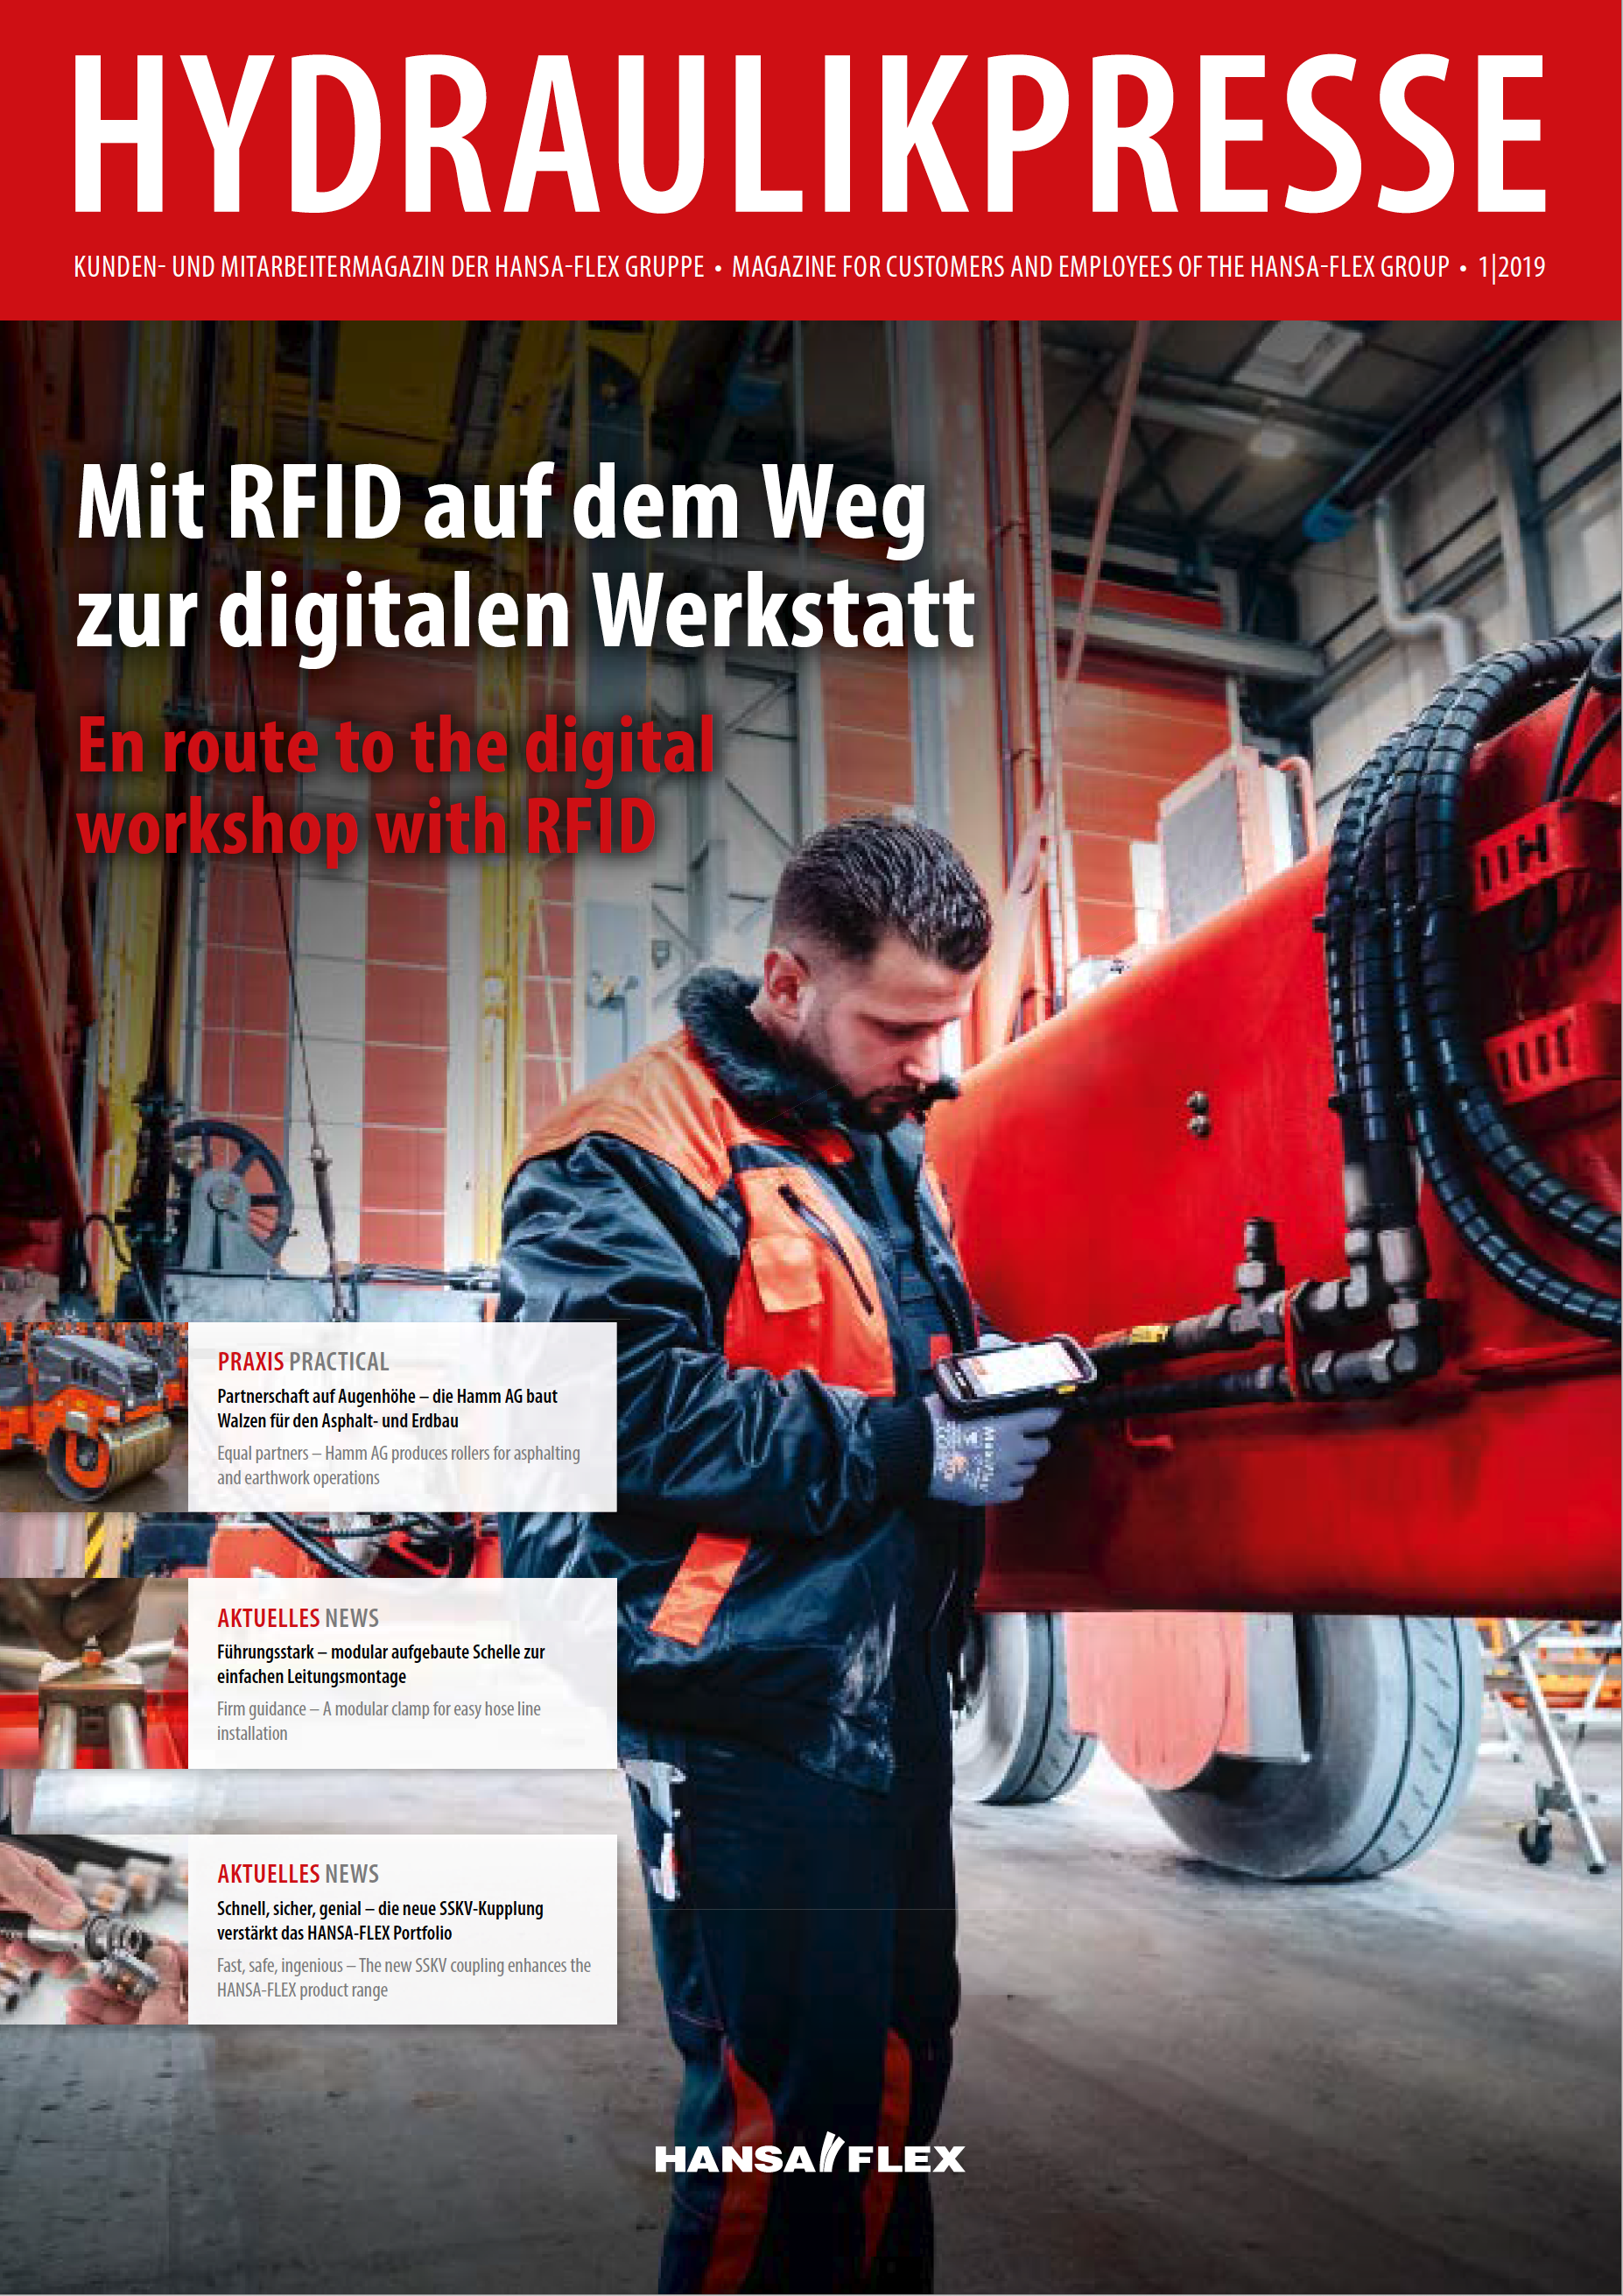 HYDRAULIKPRESSE March 2019 Cover